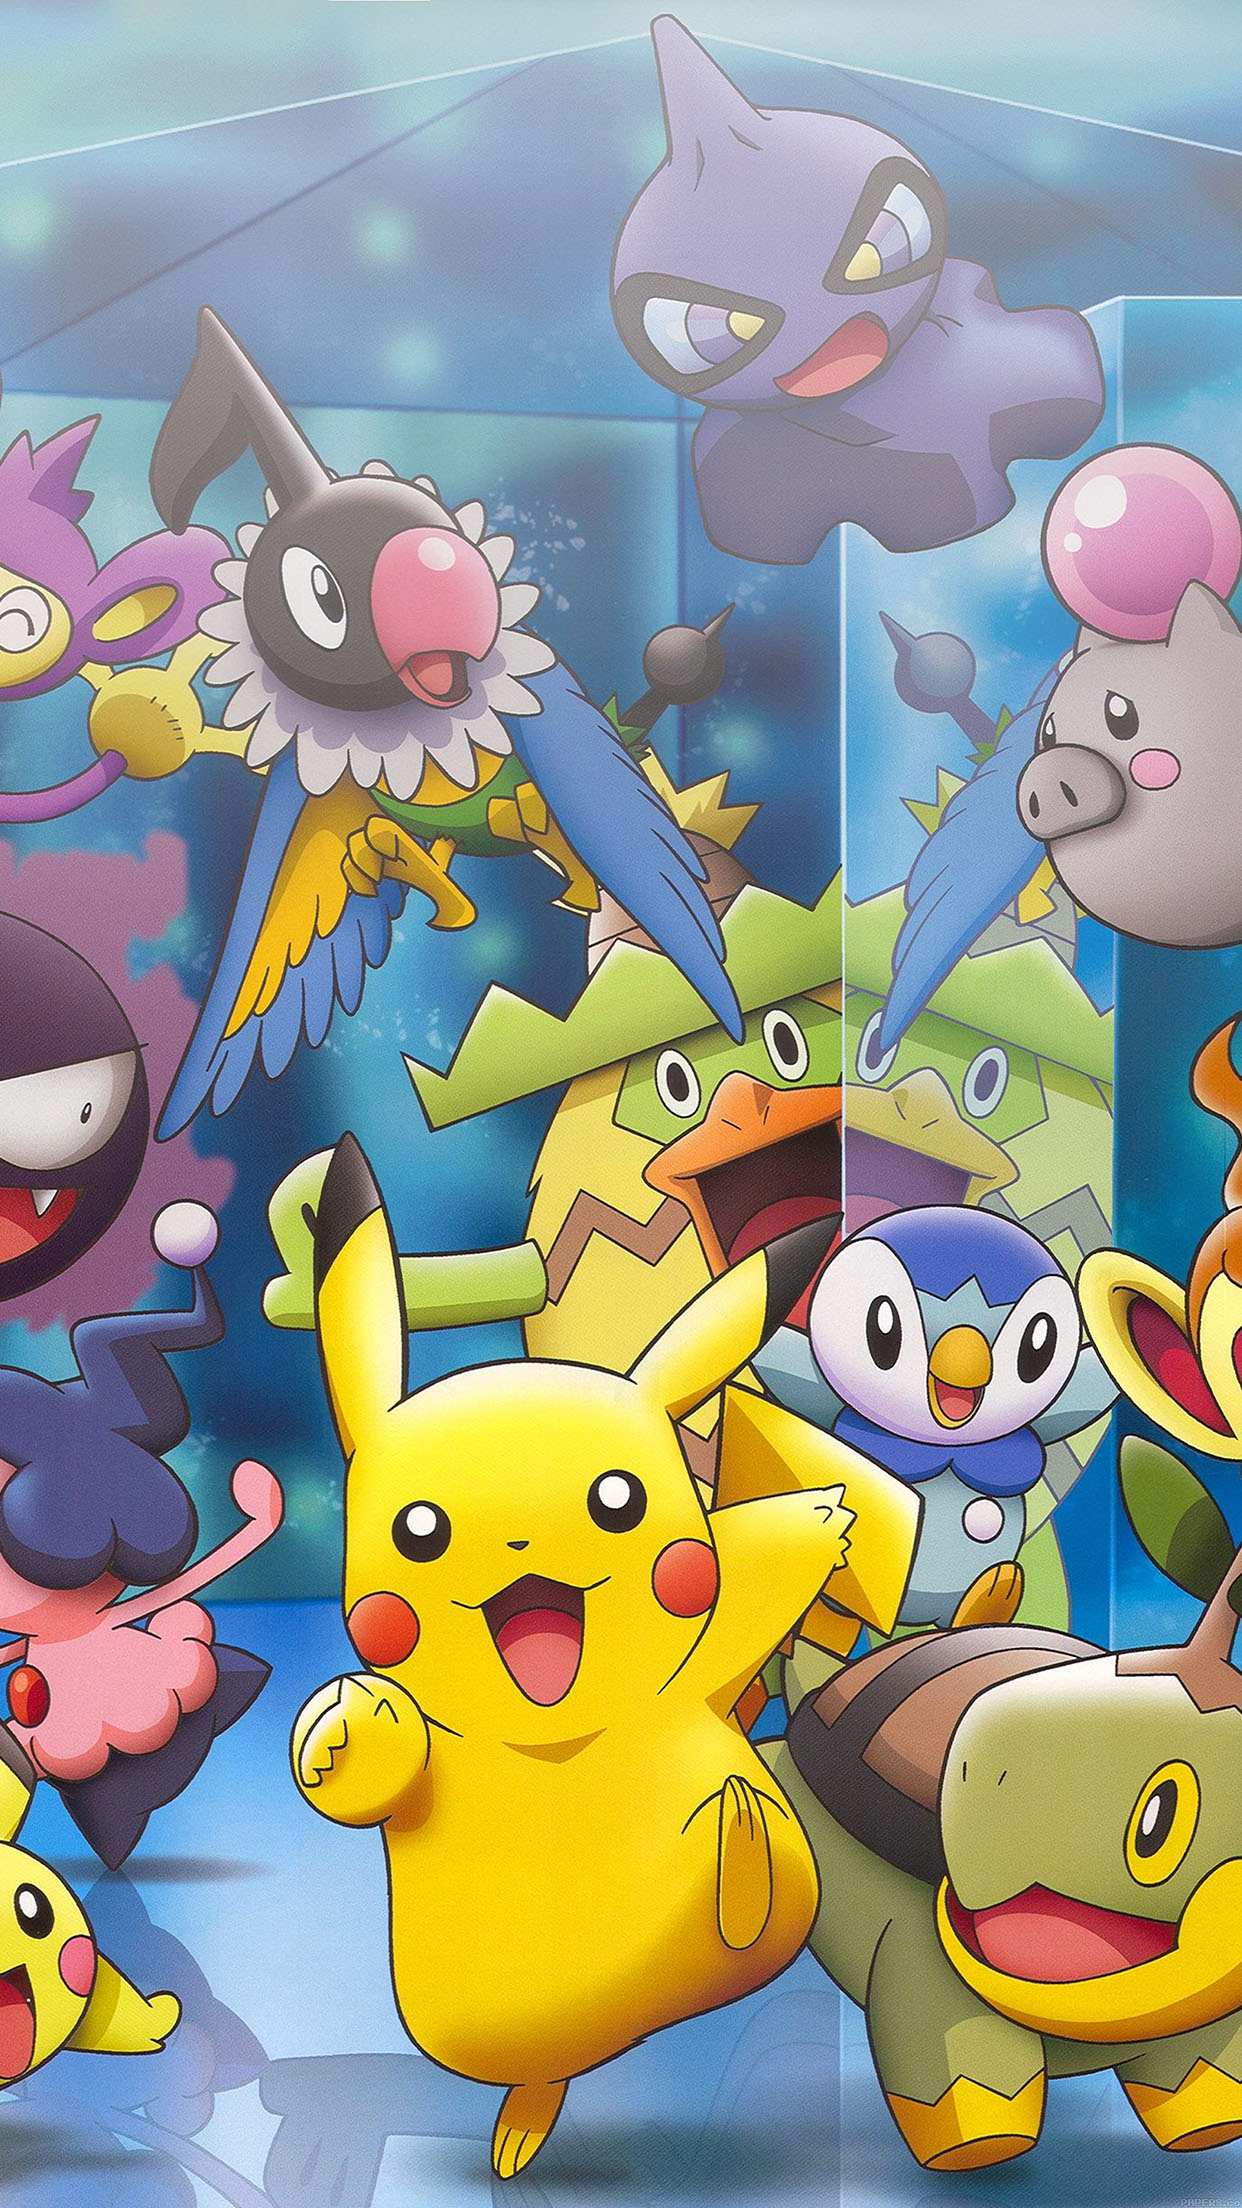 Iphone6papers Ab66 Wallpaper Pokemon Friends Anime